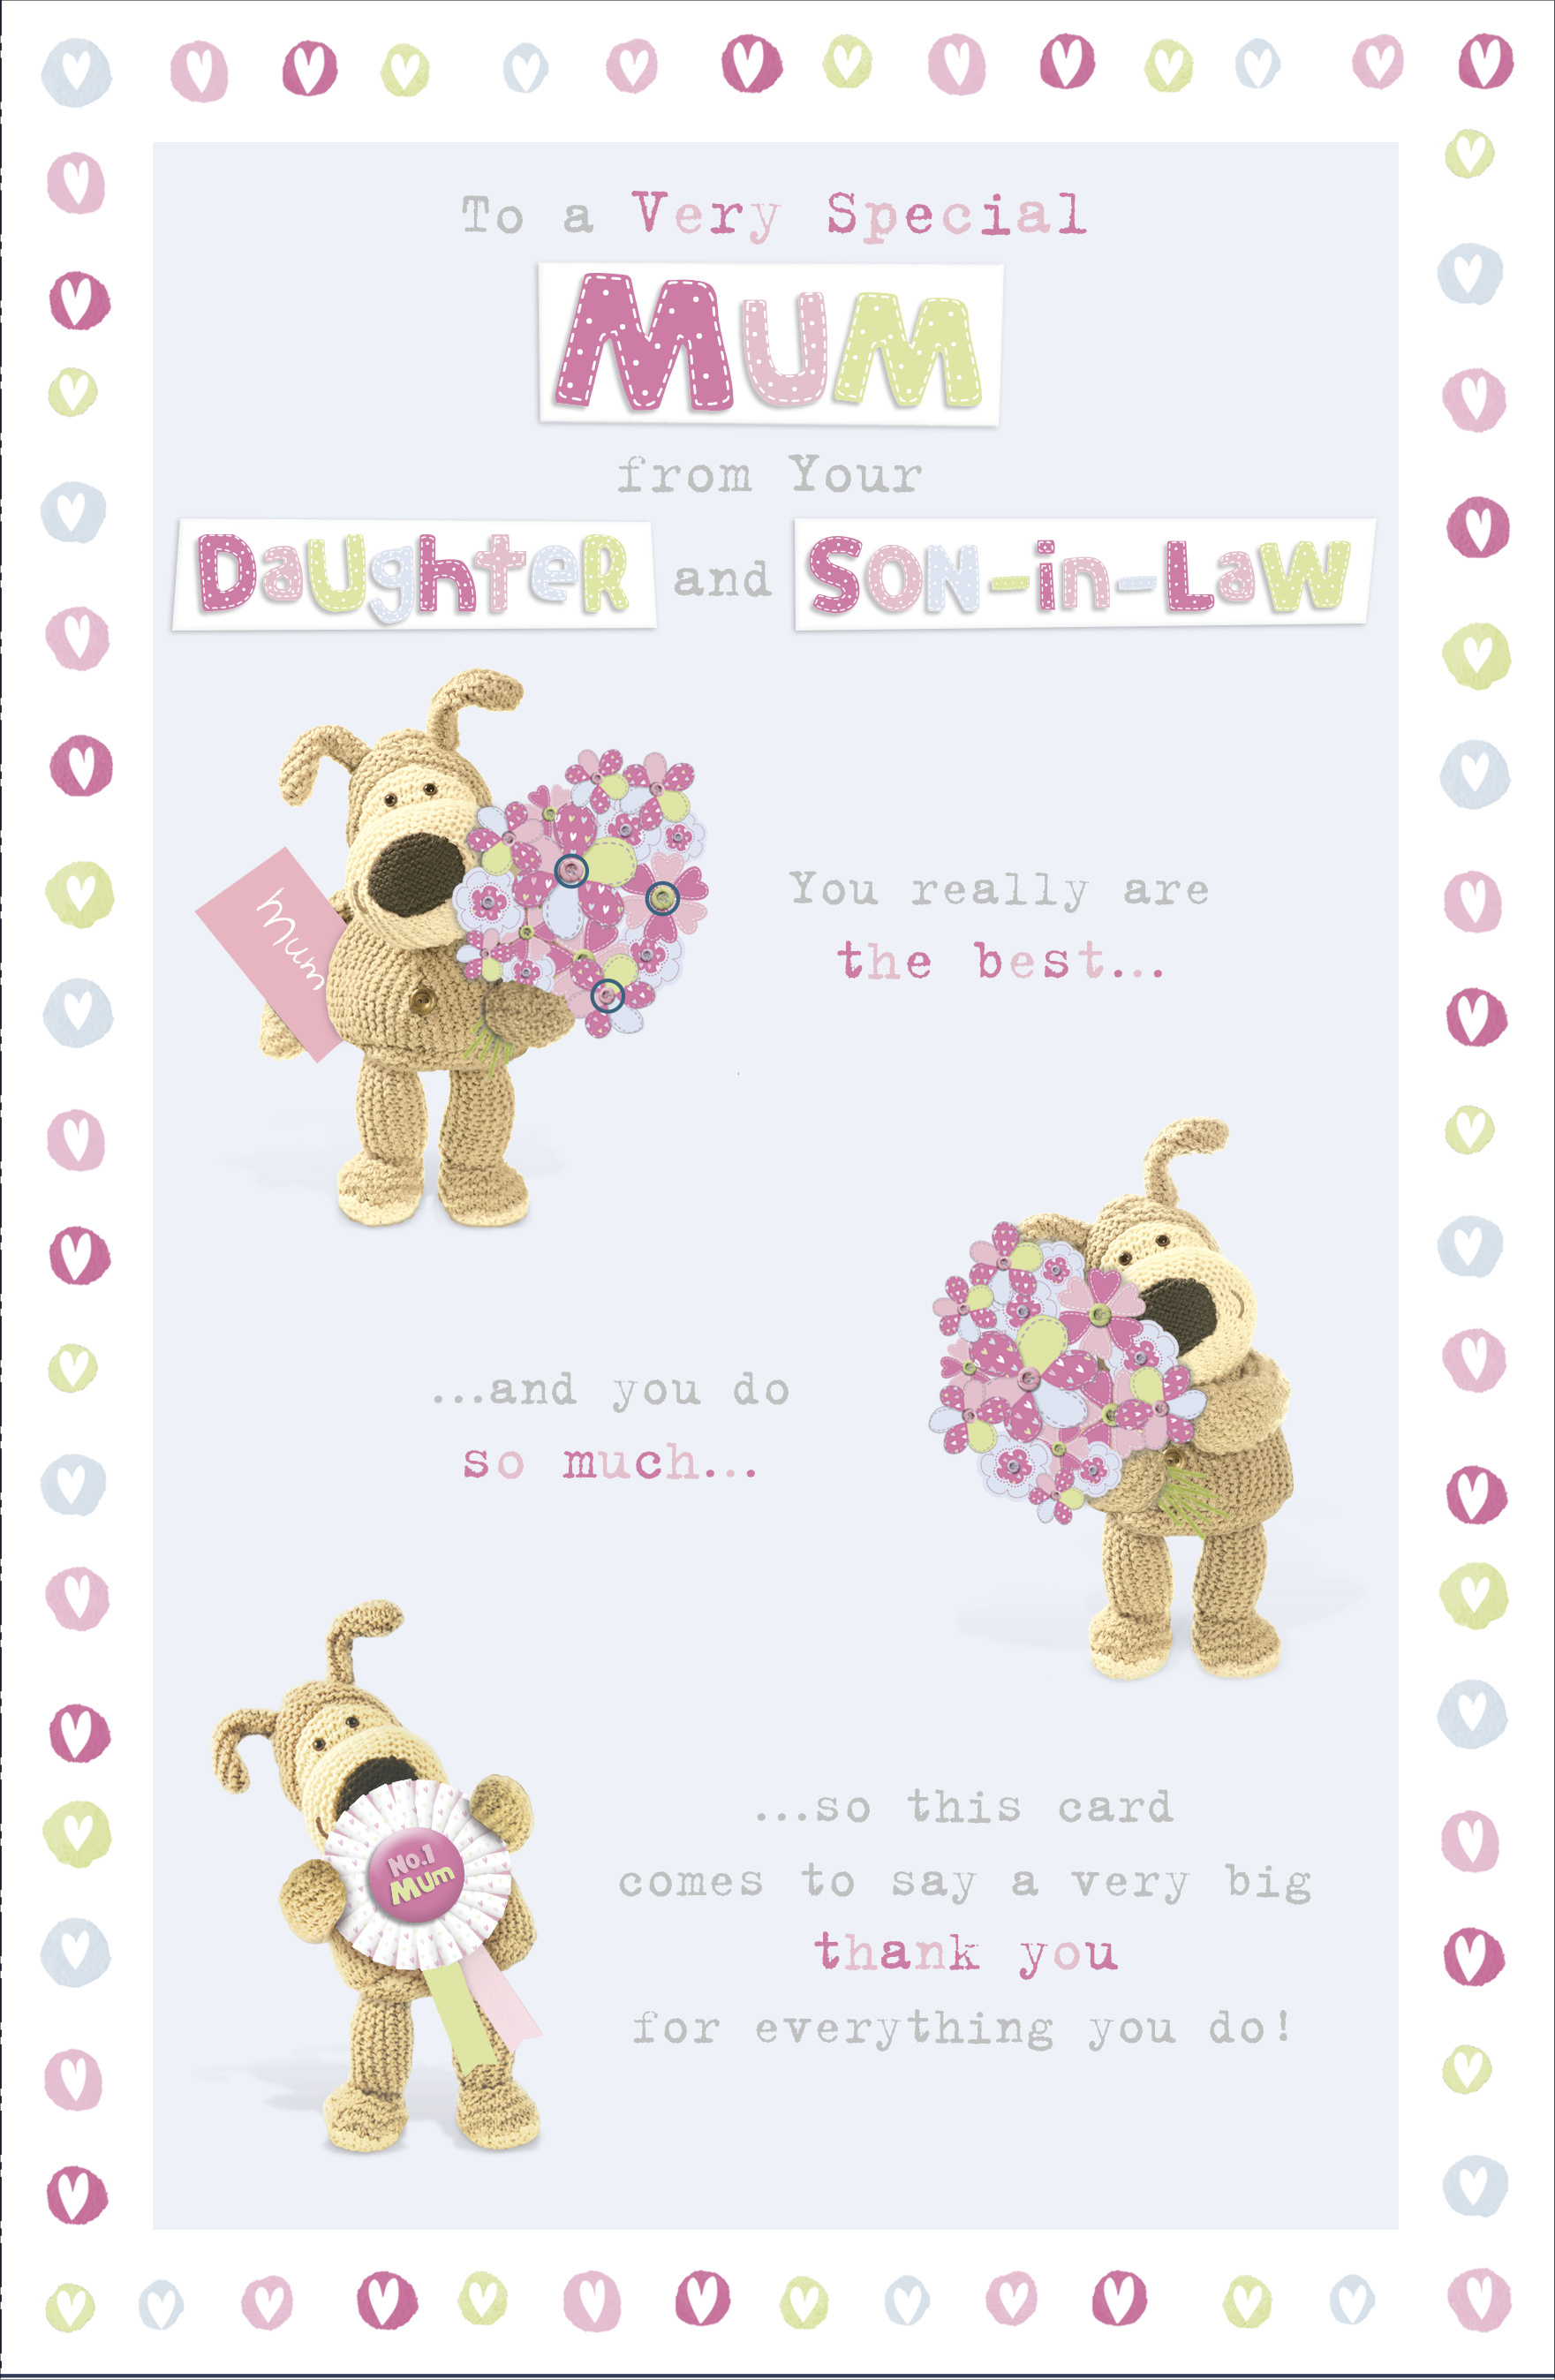 Special MAM Quality LARGE MOTHER/'S DAY CARD Bear in Balloon Design Mothers Day